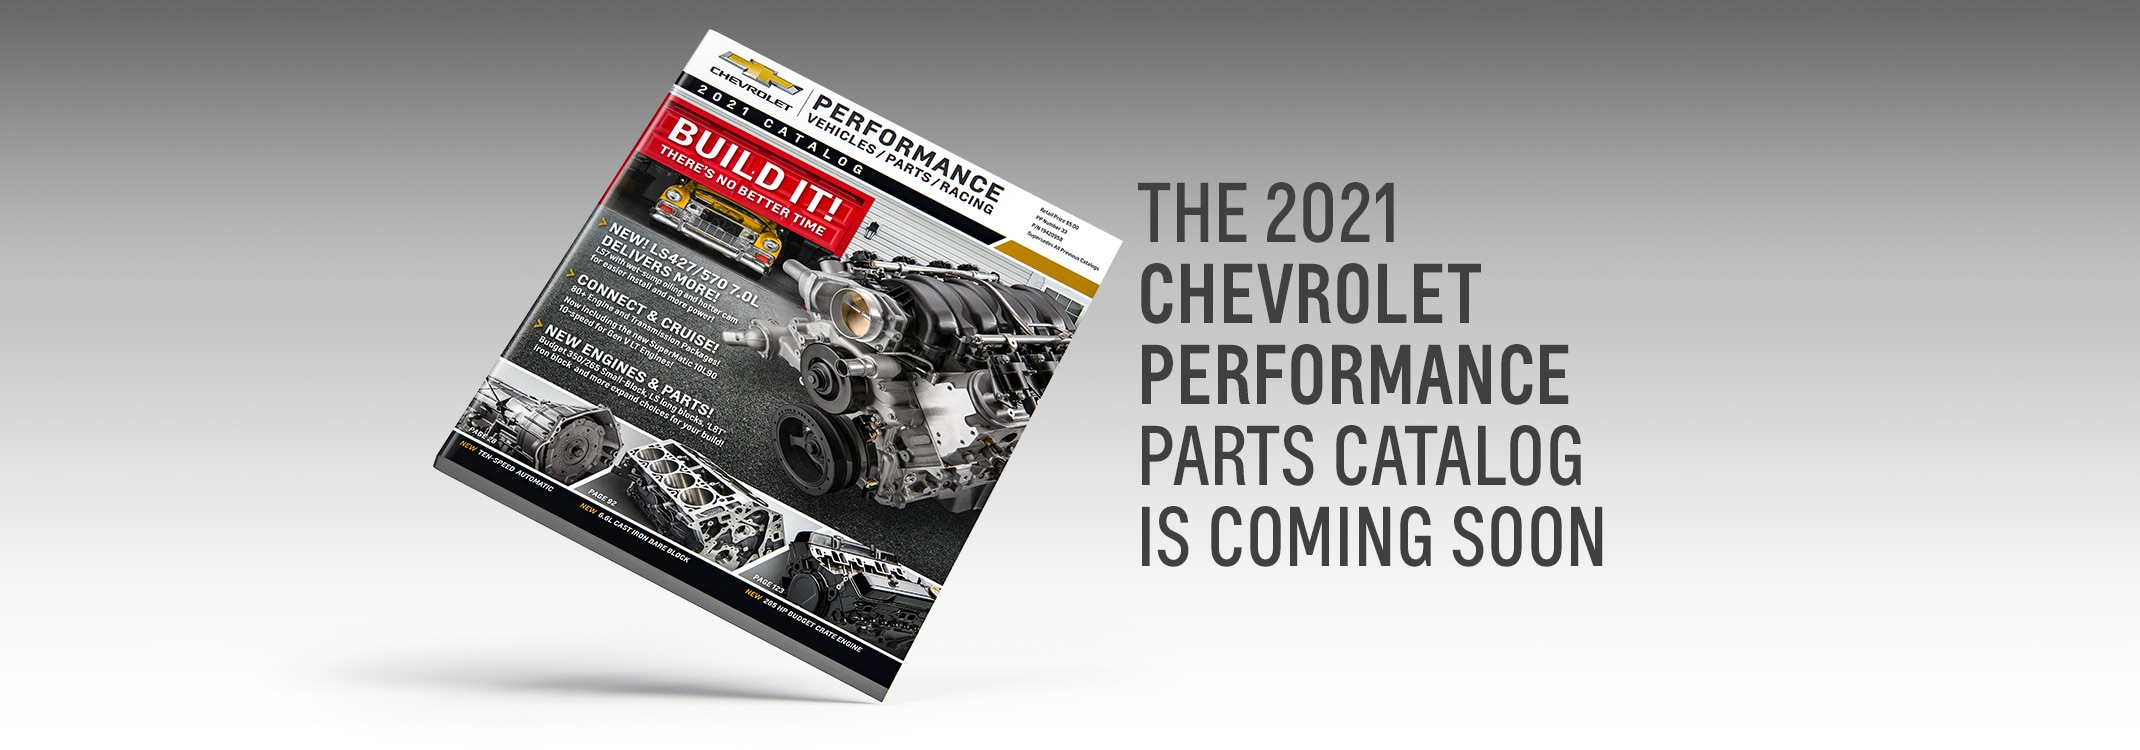 The 2021 Chevrolet Performance Parts Catalog Is Here